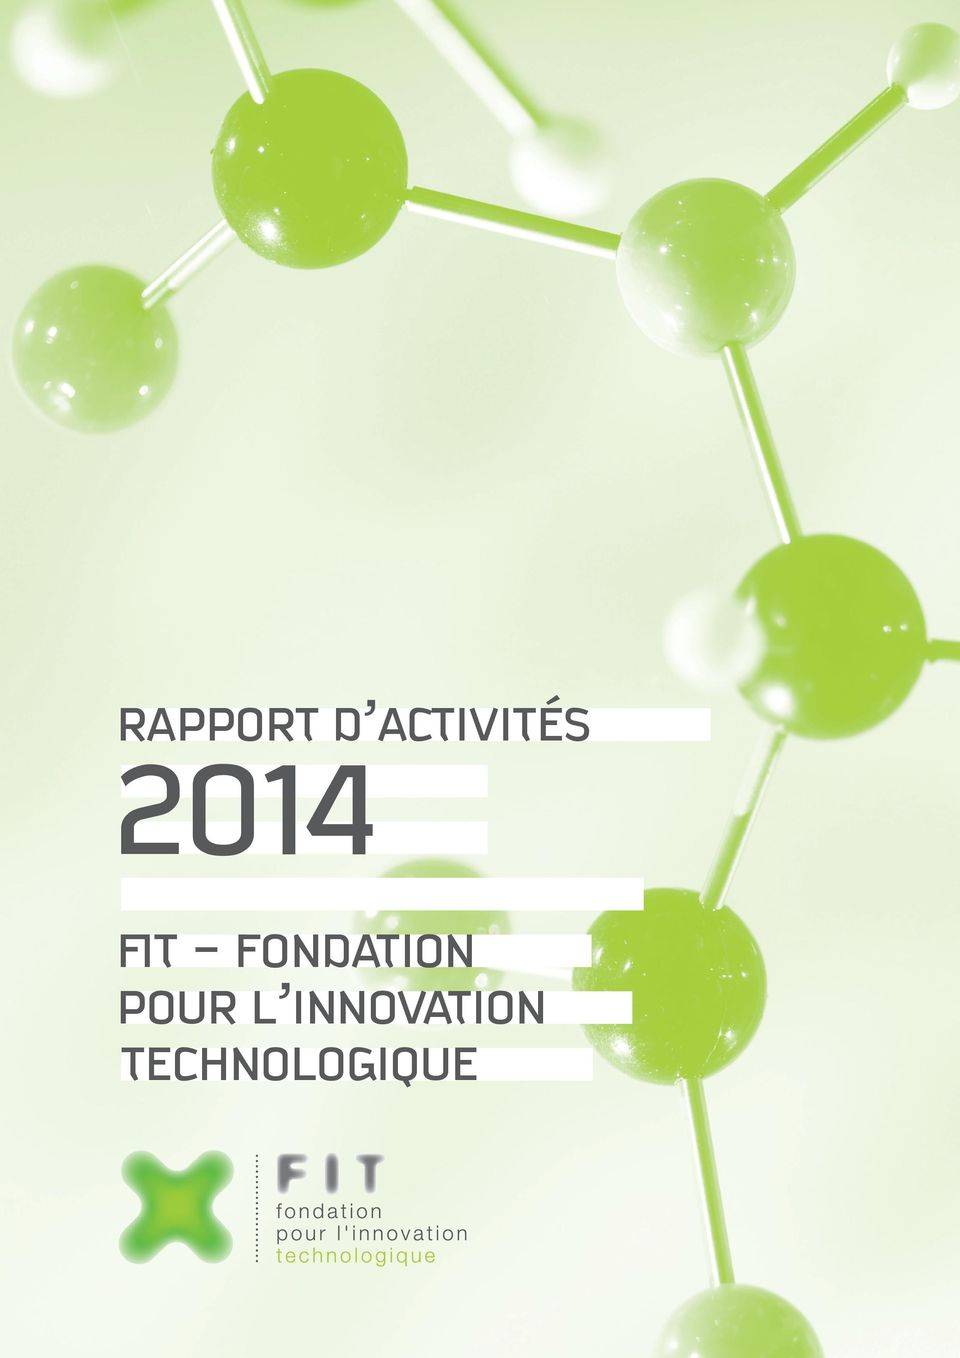 fit - fondation